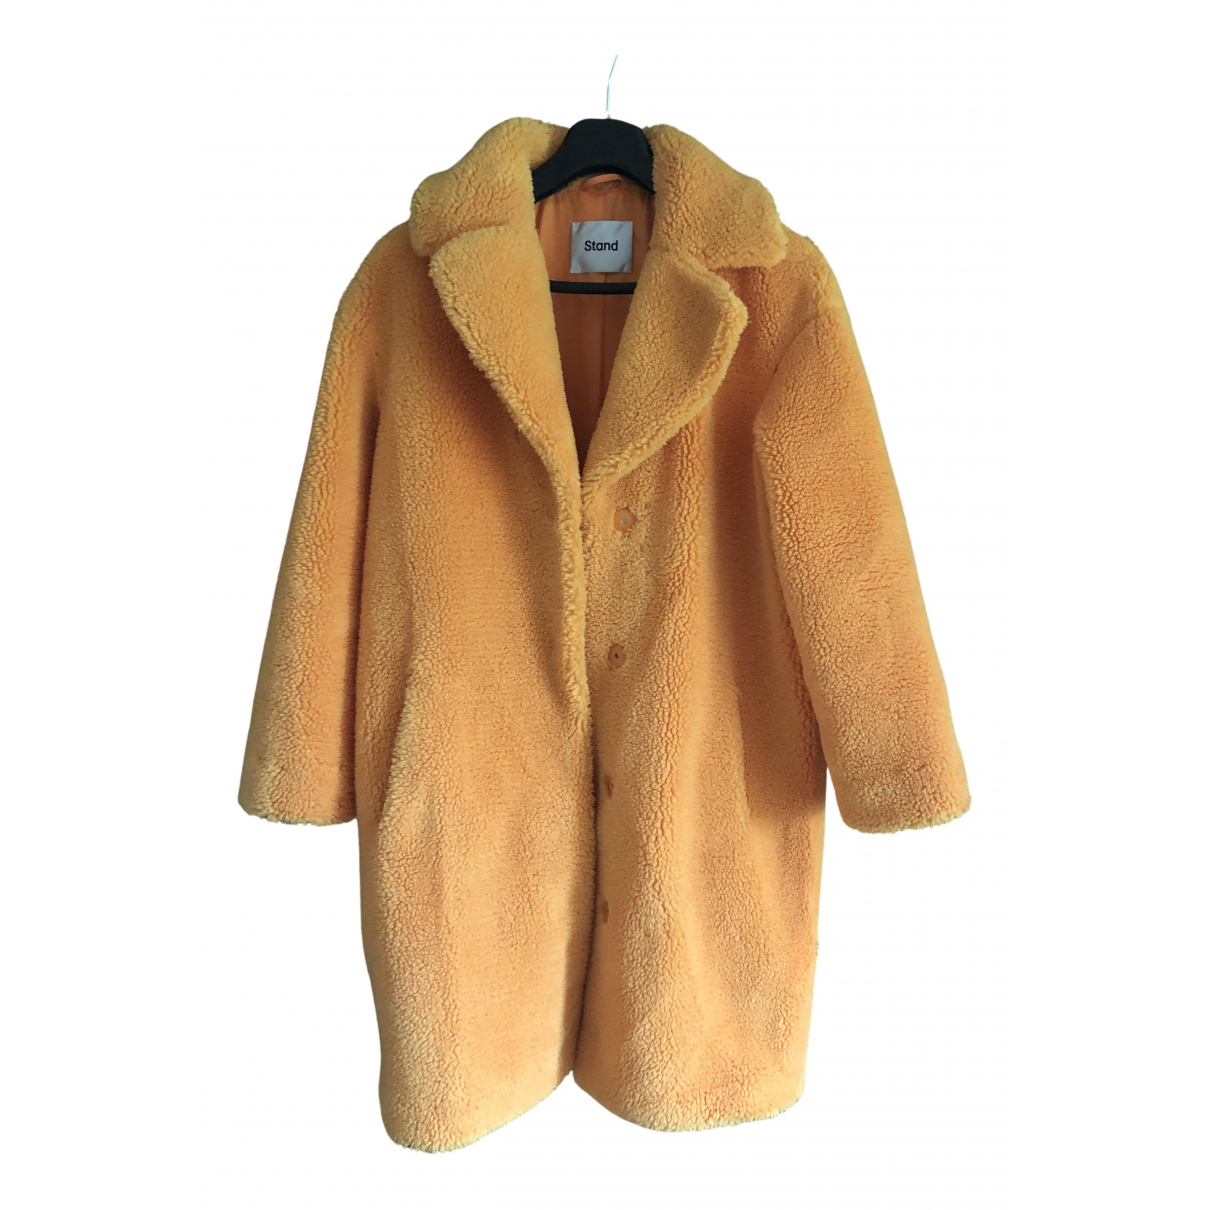 Stand Studio \N Yellow Faux fur coat for Women S International